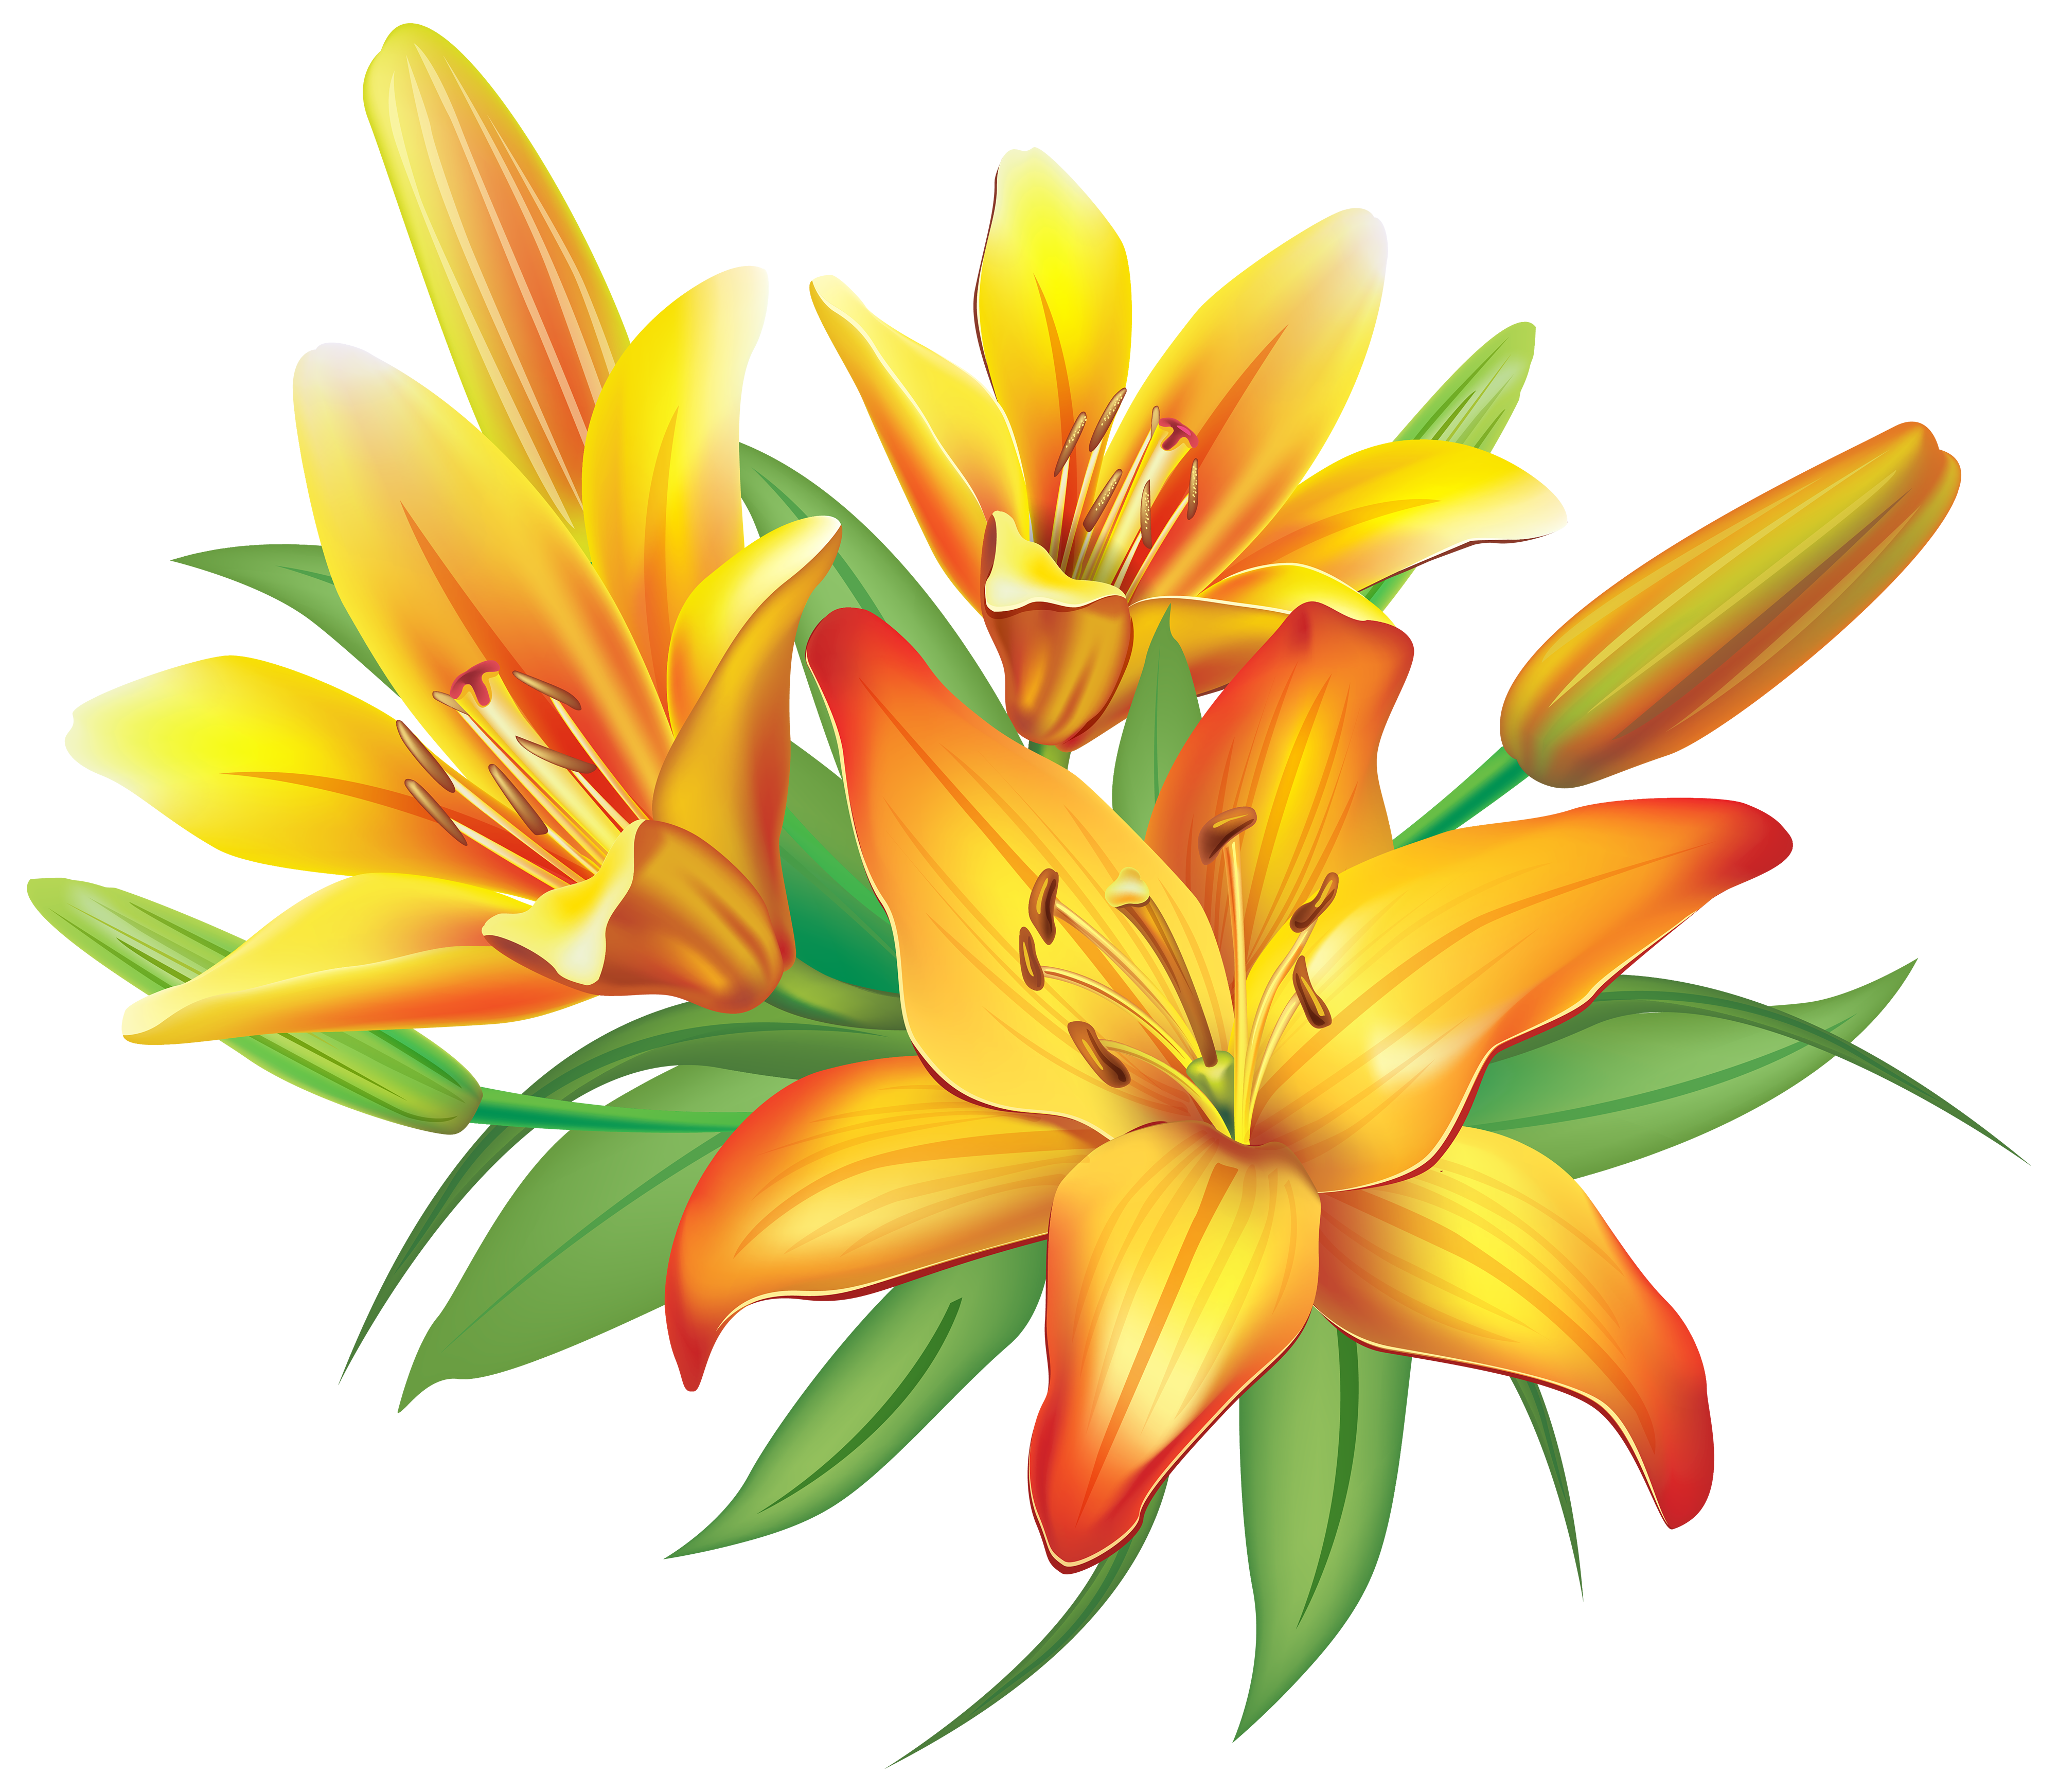 Lily flower border clipart clipart free Orange lily clipart - Clipground clipart free